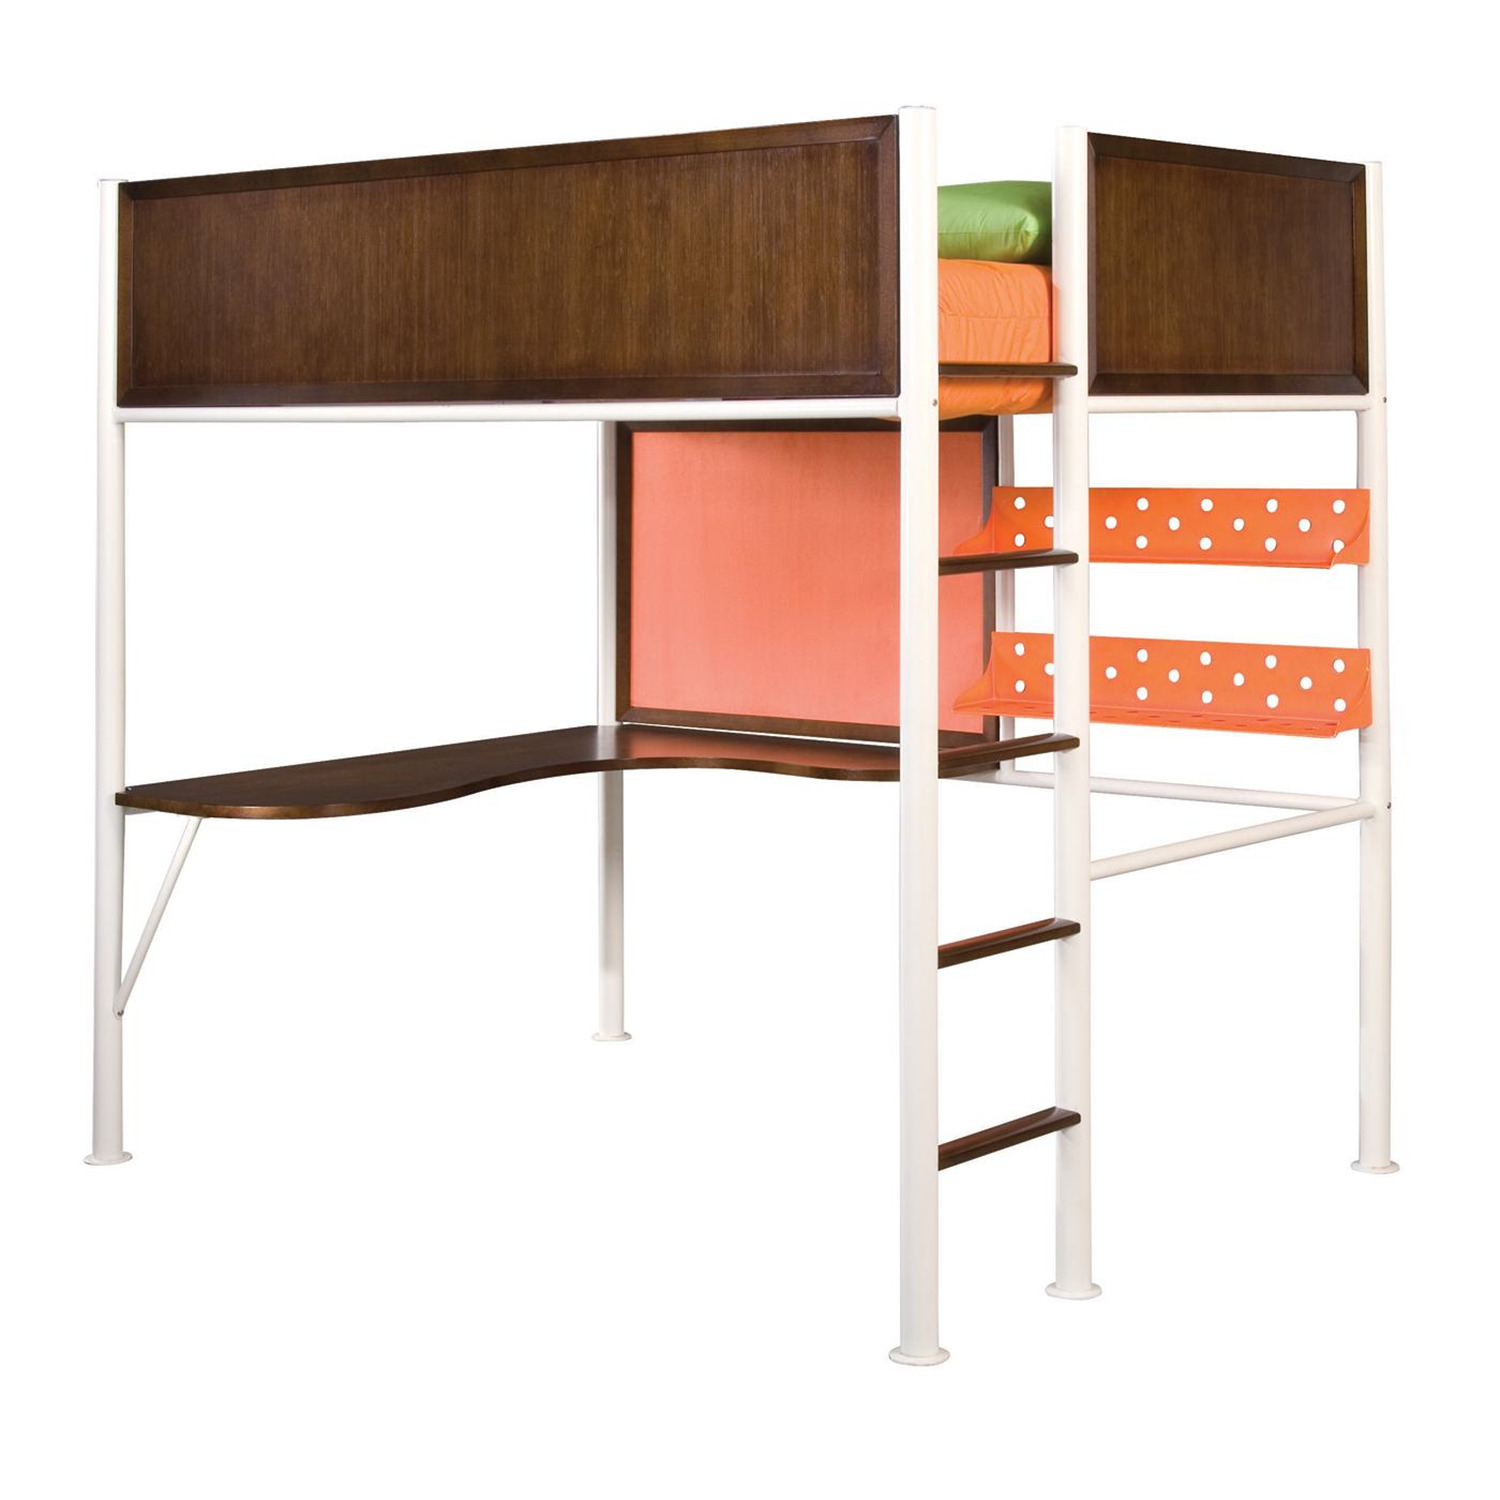 Lea Teen Nick Studio Loft Bed Full By Oj Commerce 970 984r